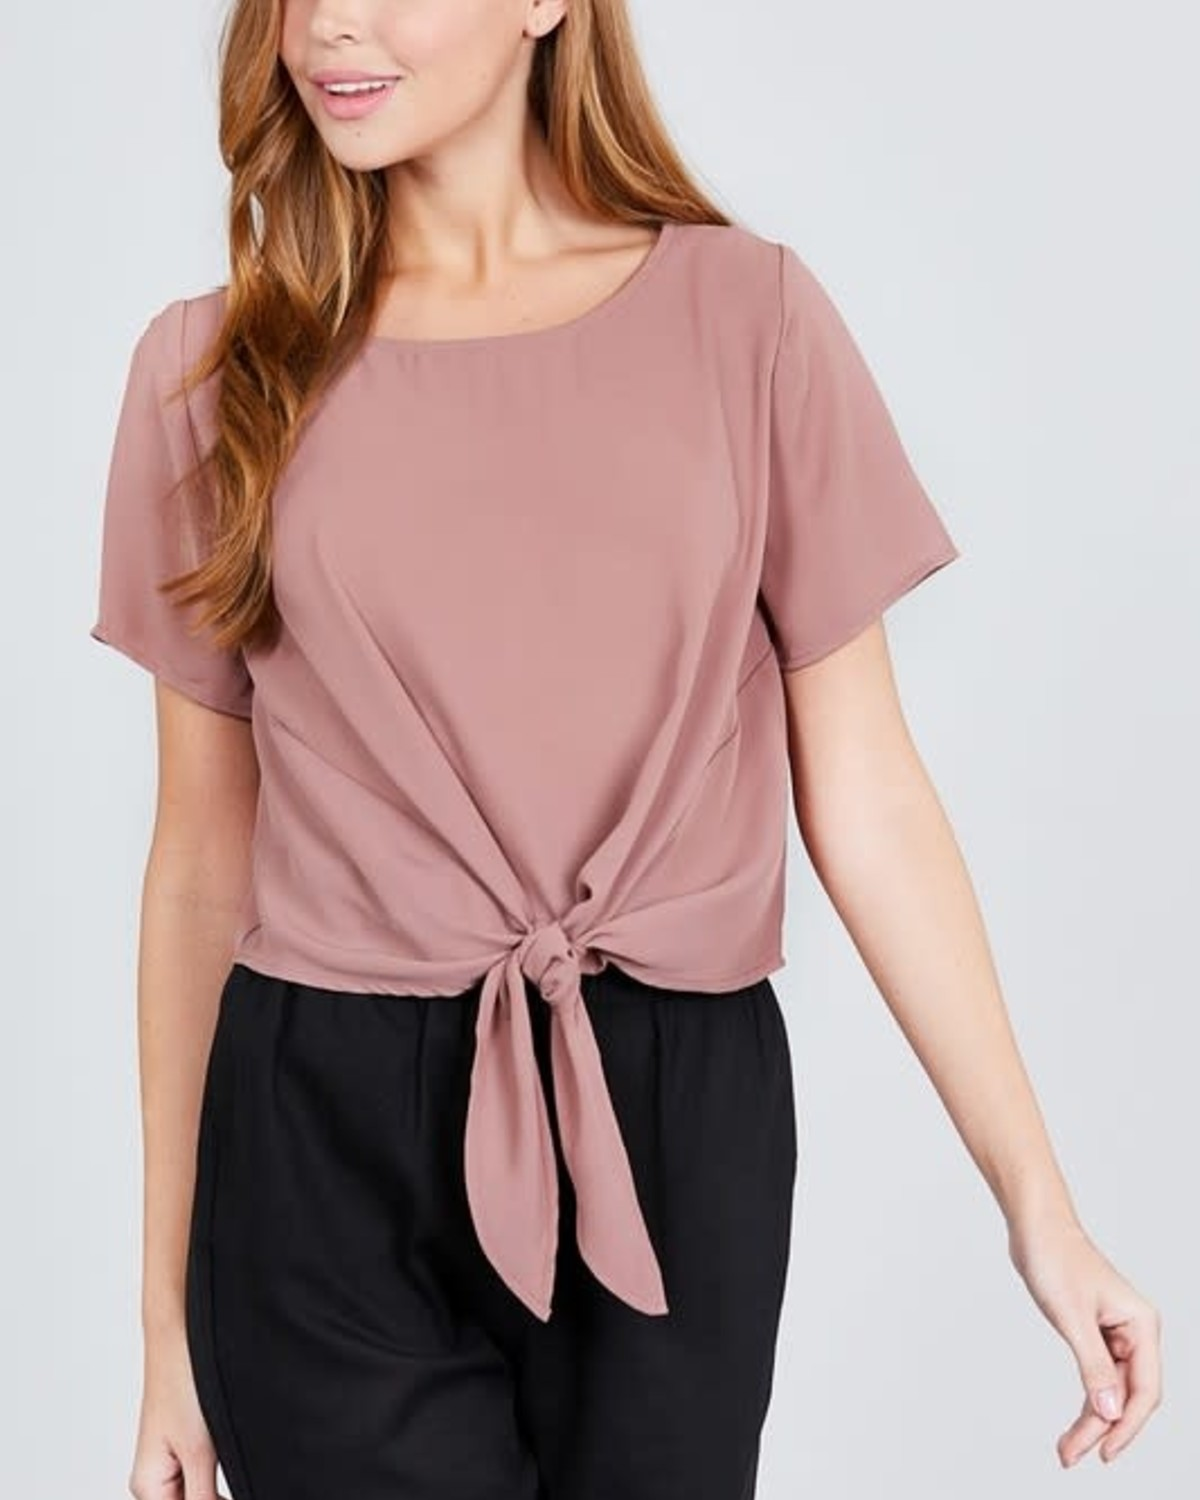 Tie Knot Top Pinkish Tan